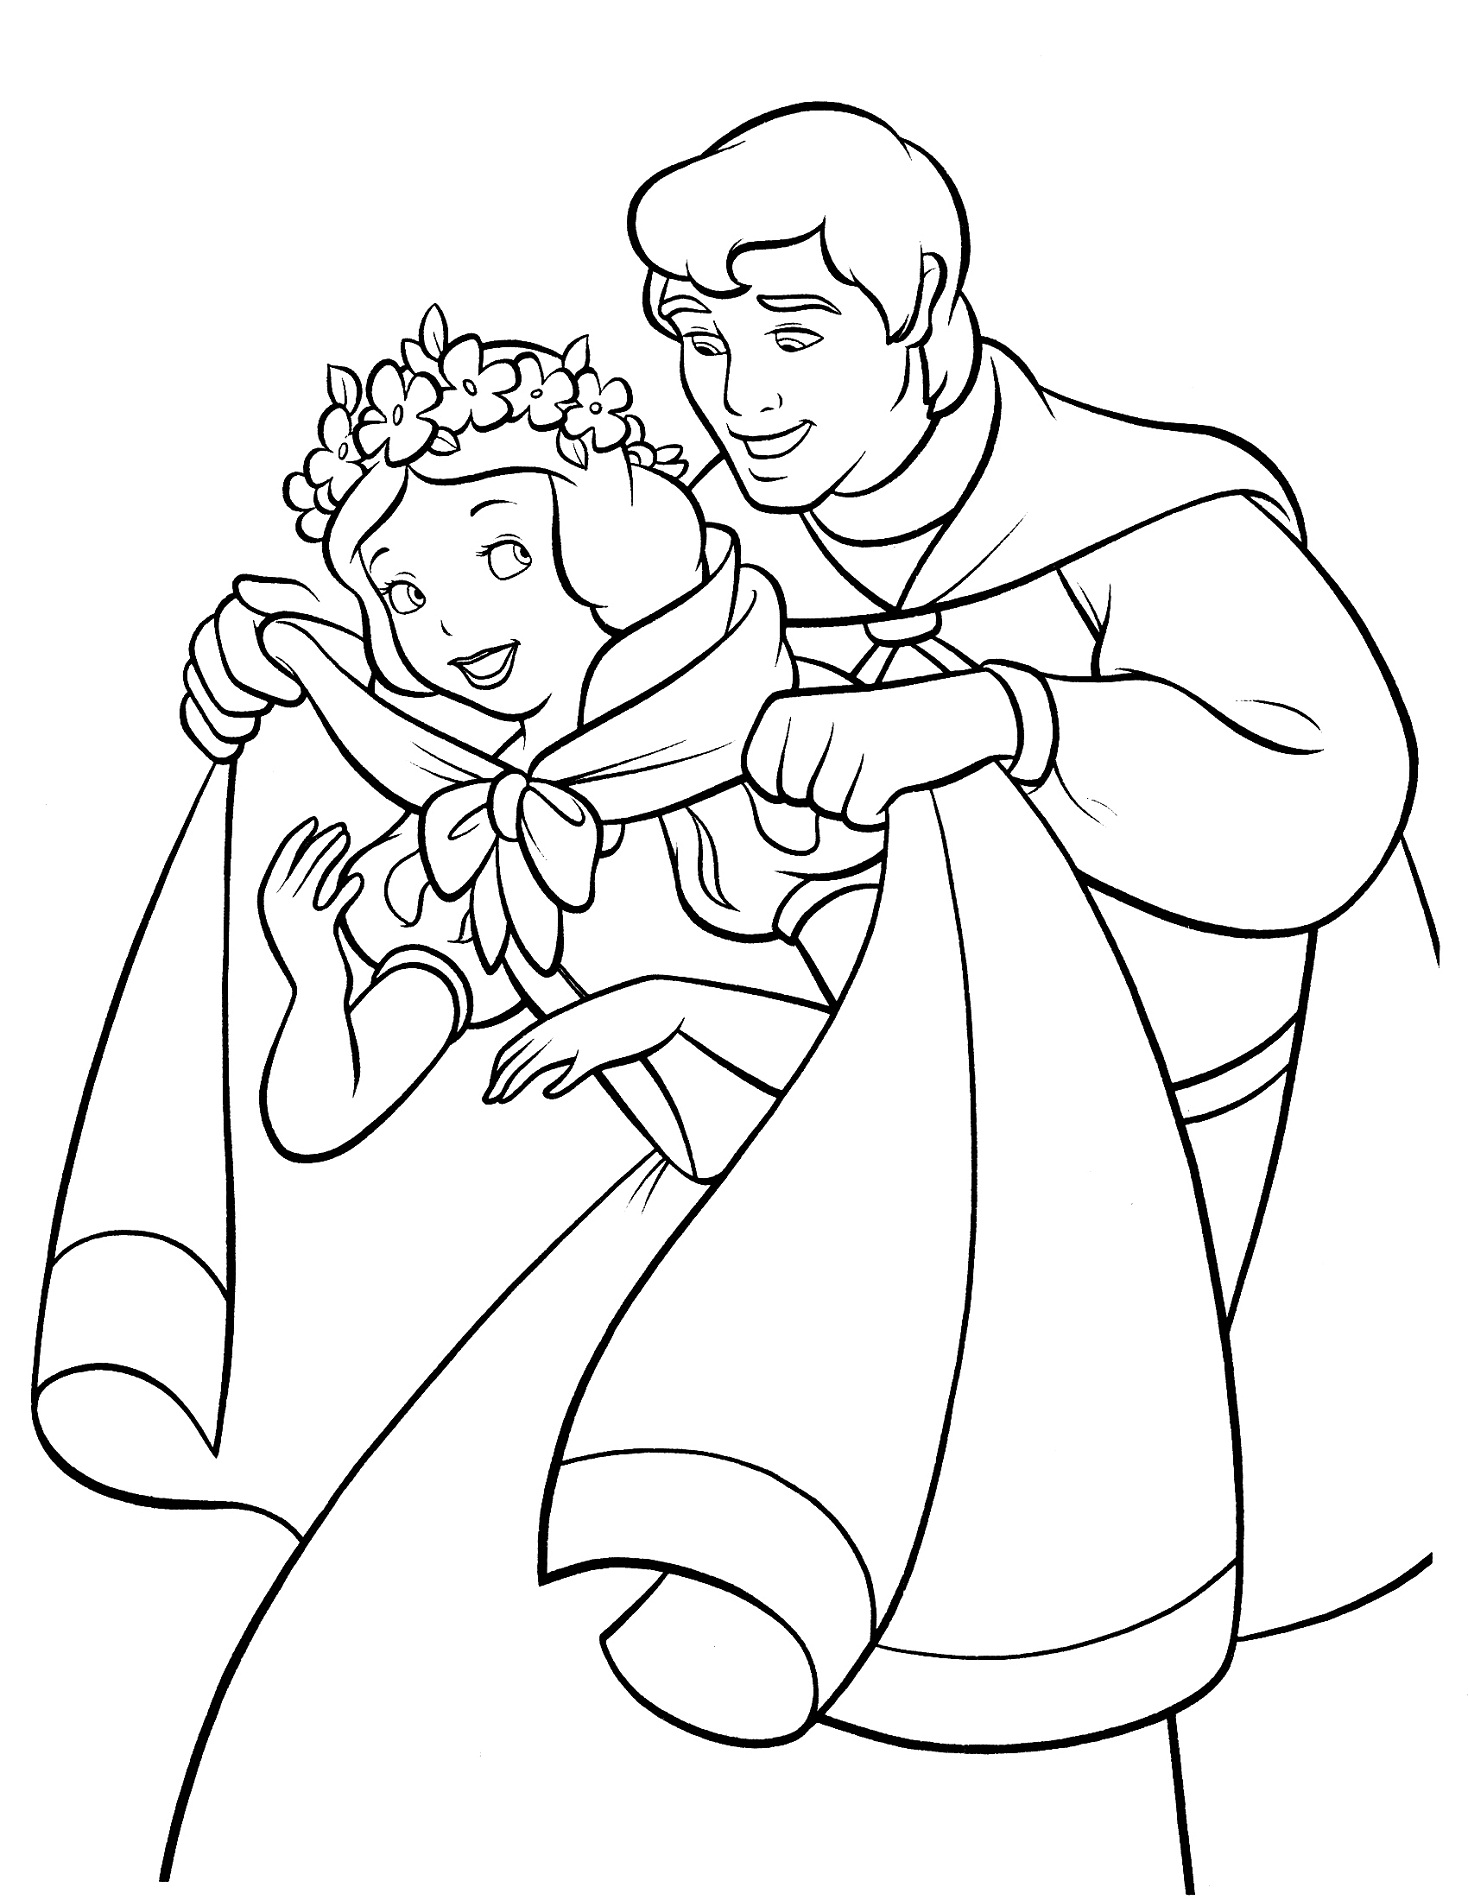 Snow White Color Pages to Print | Activity Shelter